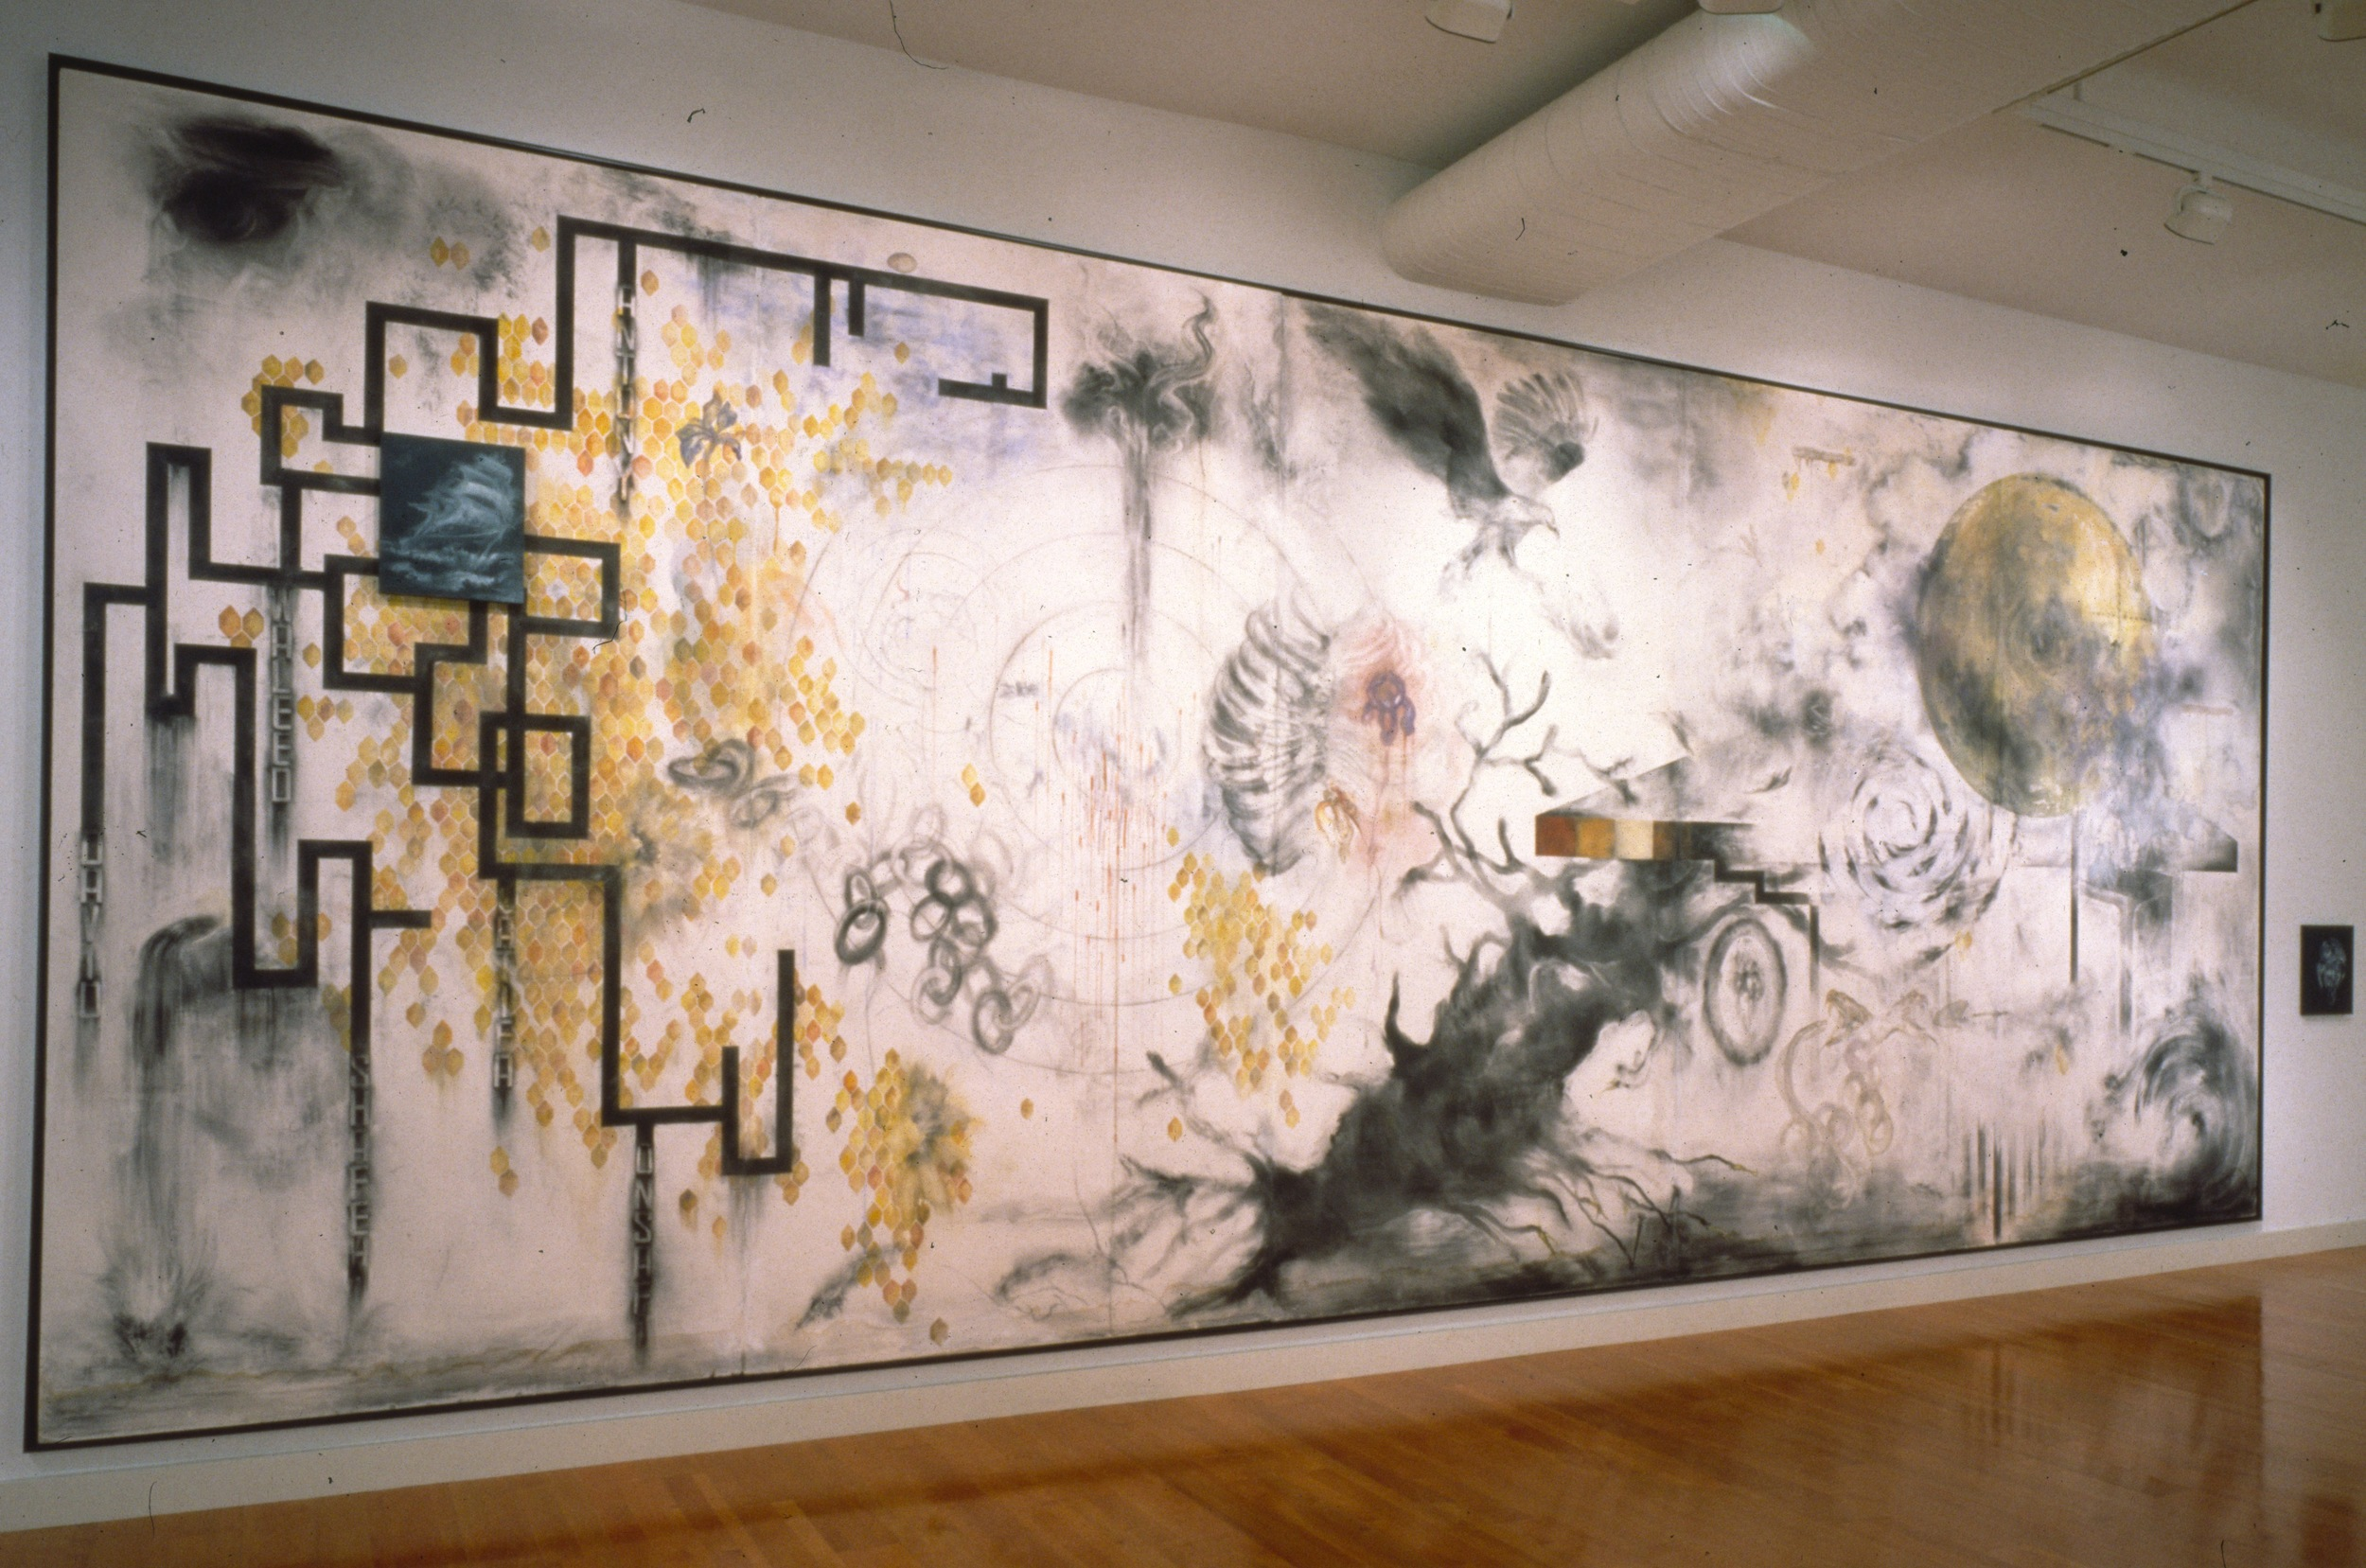 find the Syrian boys  installation preliminary drawing  mixed media  8'x20'  1990-1992